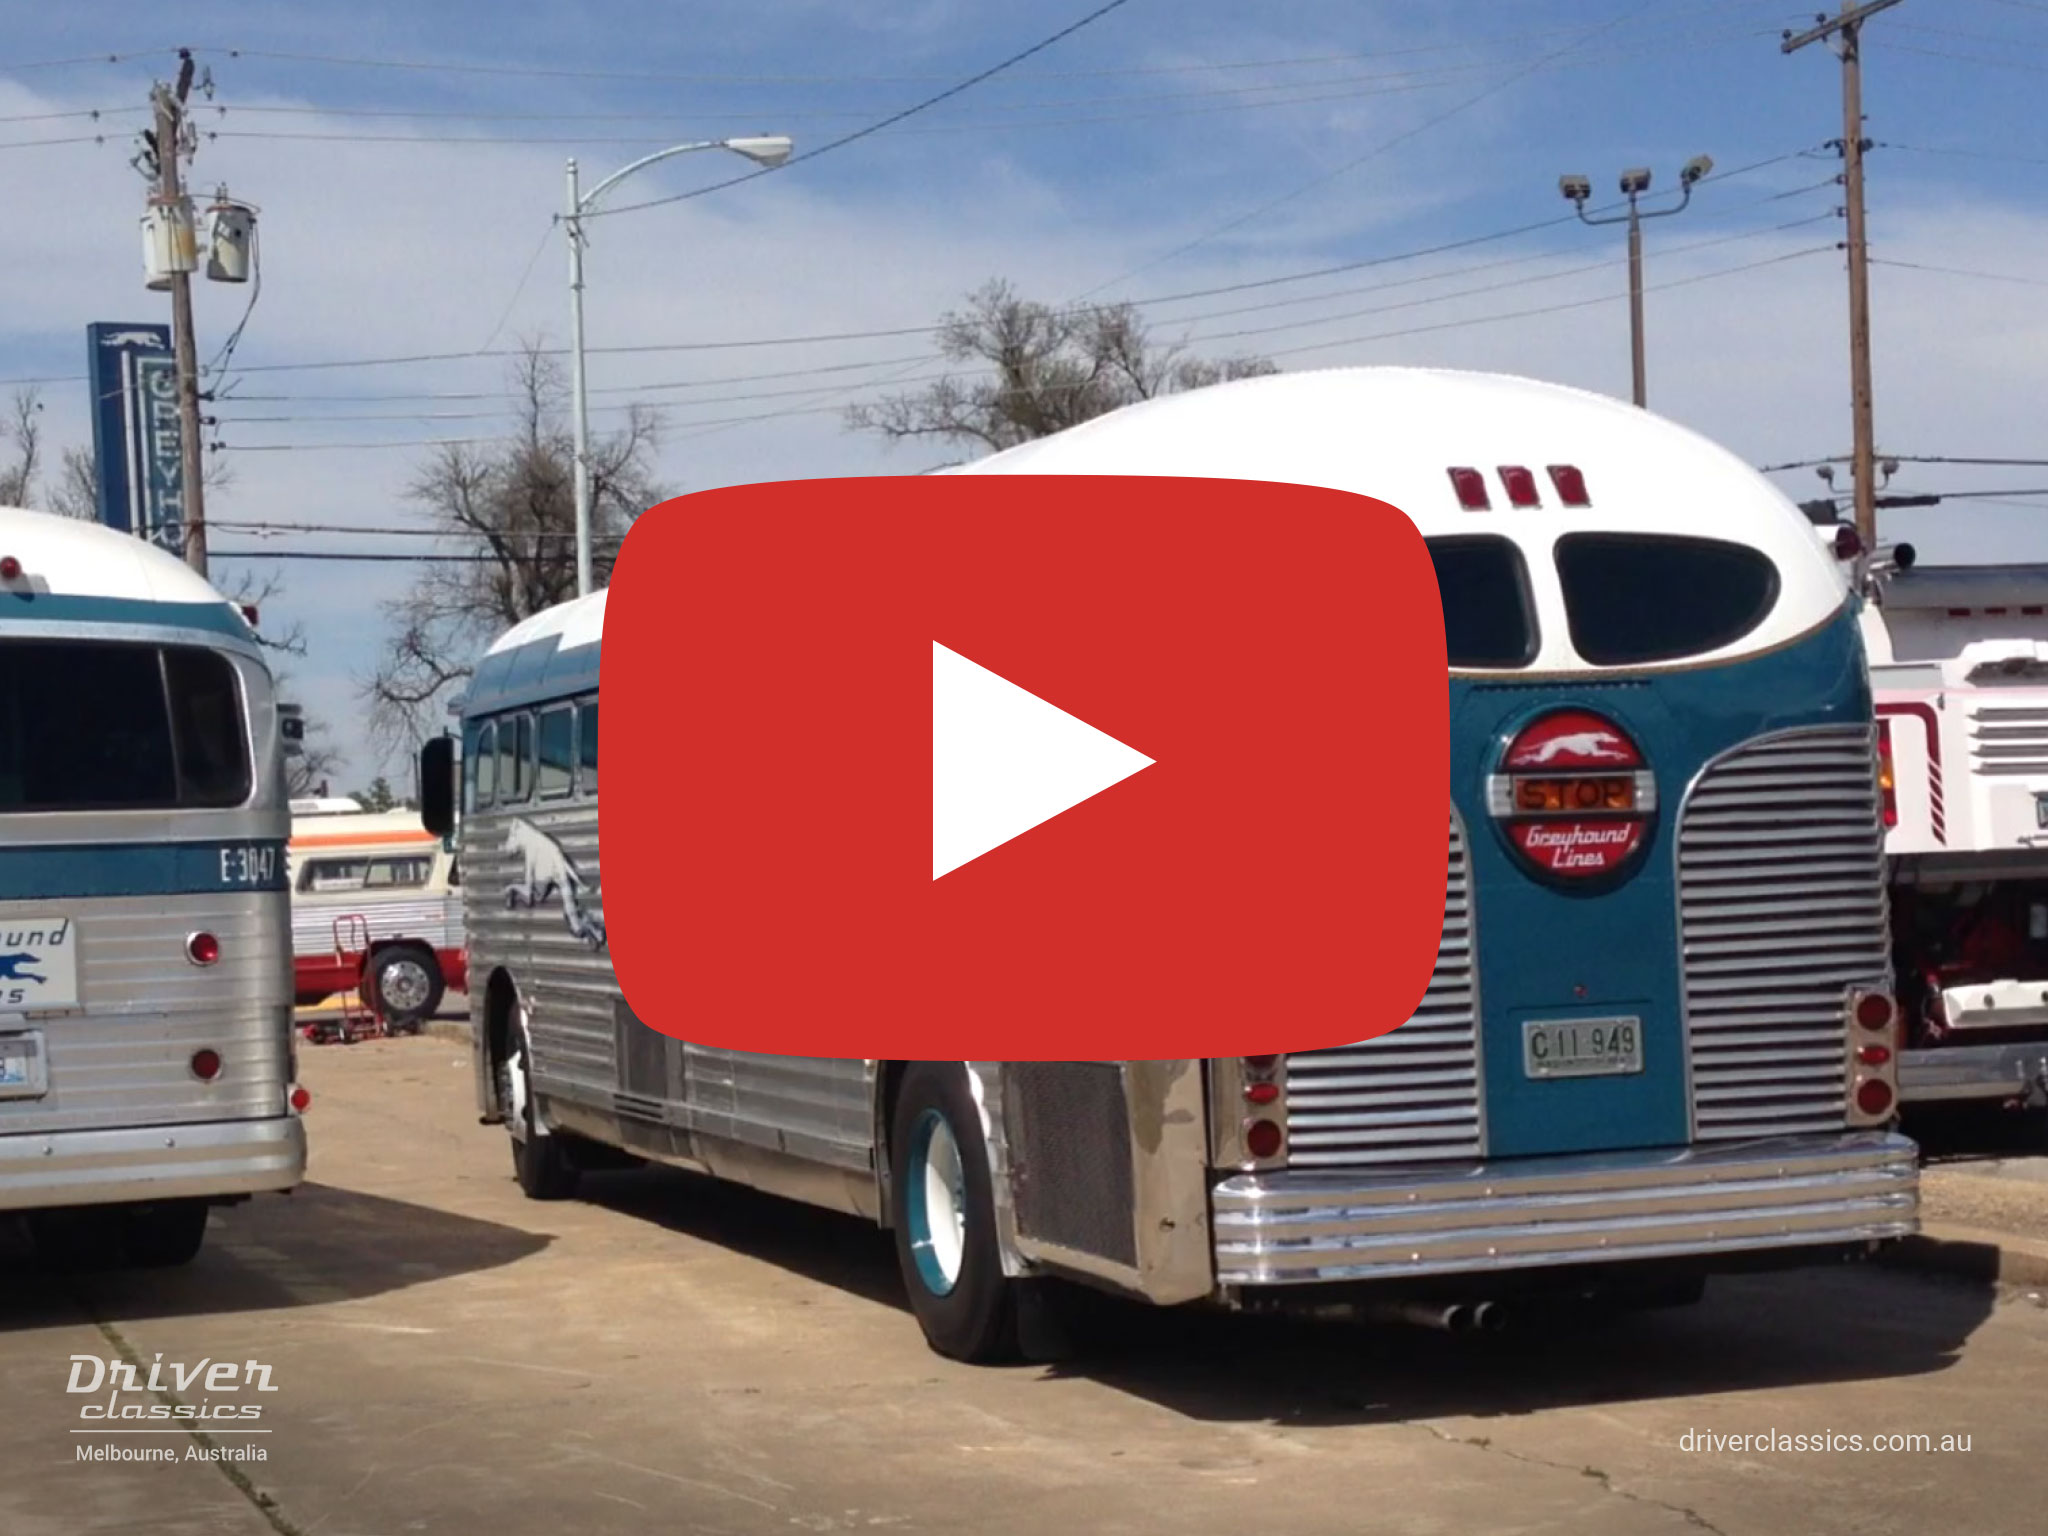 GM PD 3751 Silversides bus , 1947 model, and other classic buses, Blytheville AR, USA April 2013